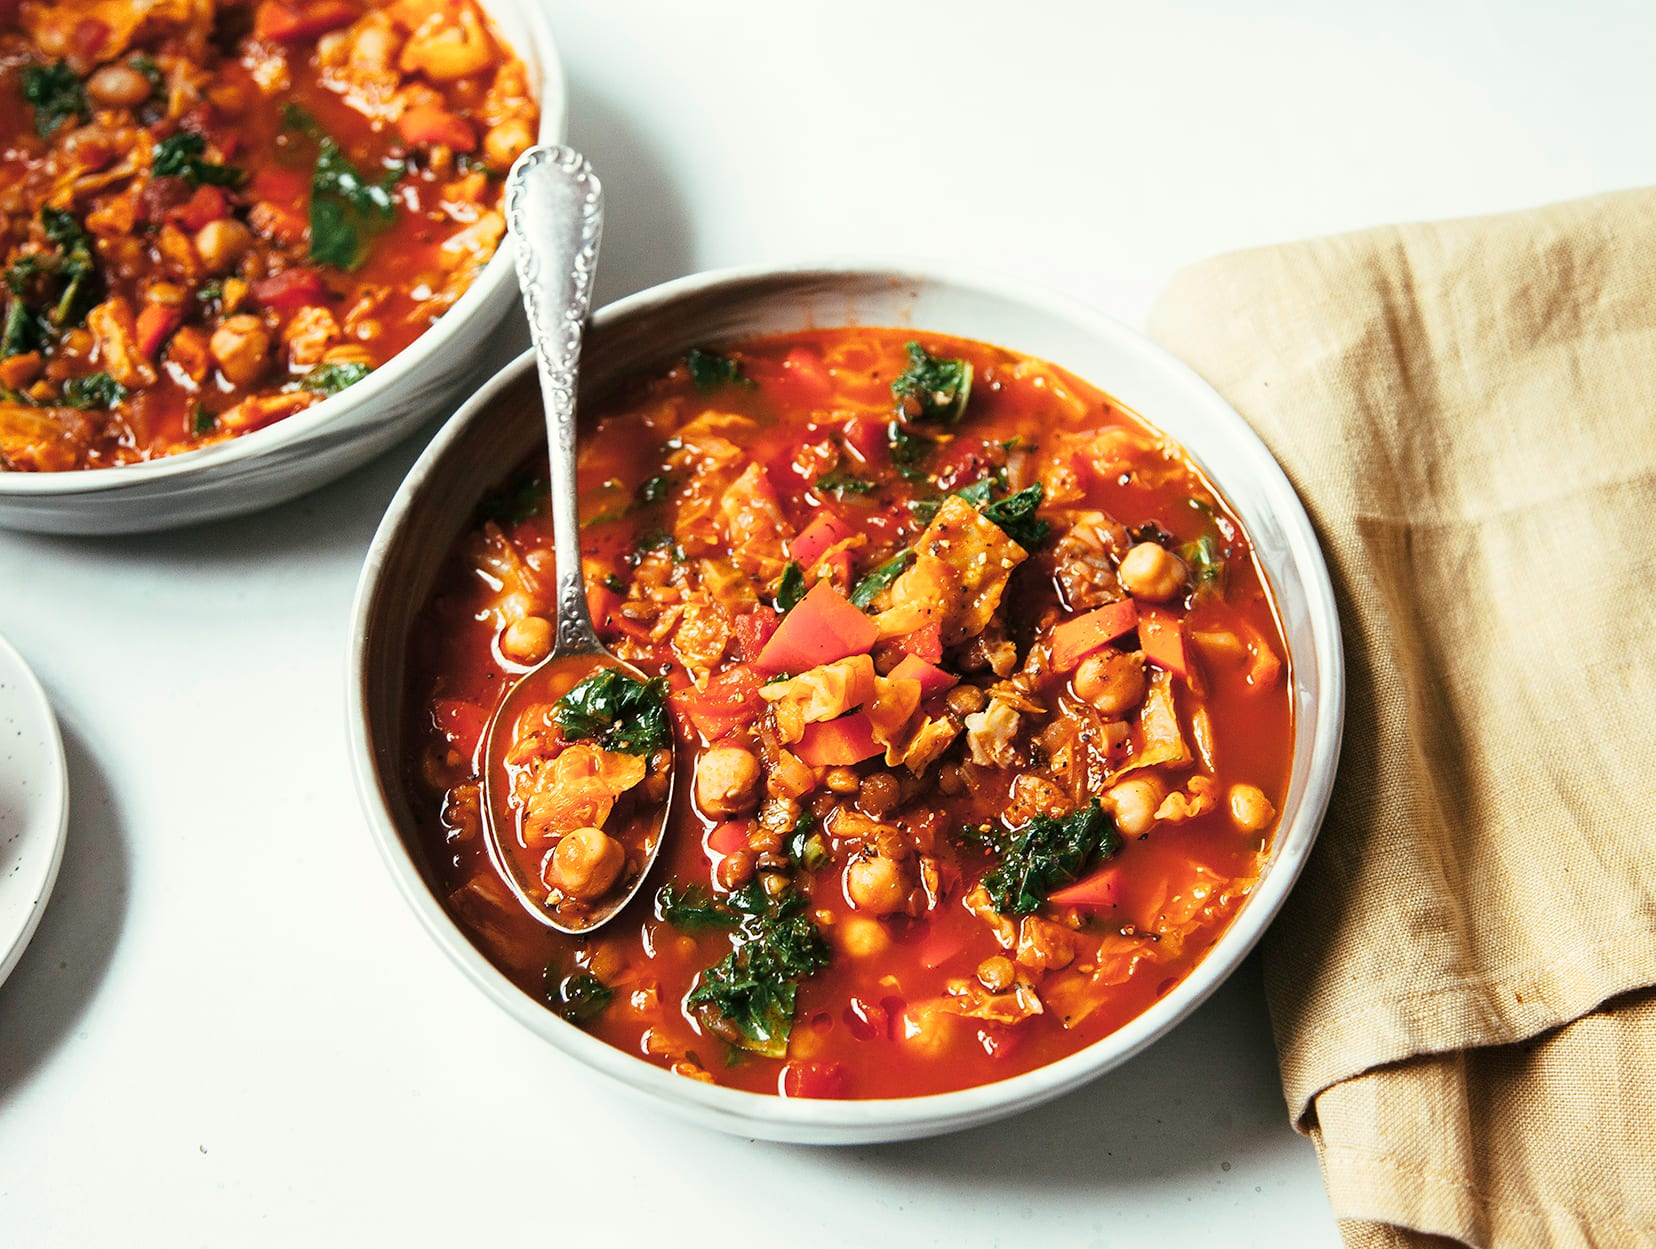 SMOKY CHICKPEA, LENTIL & CABBAGE STEW WITH KALE